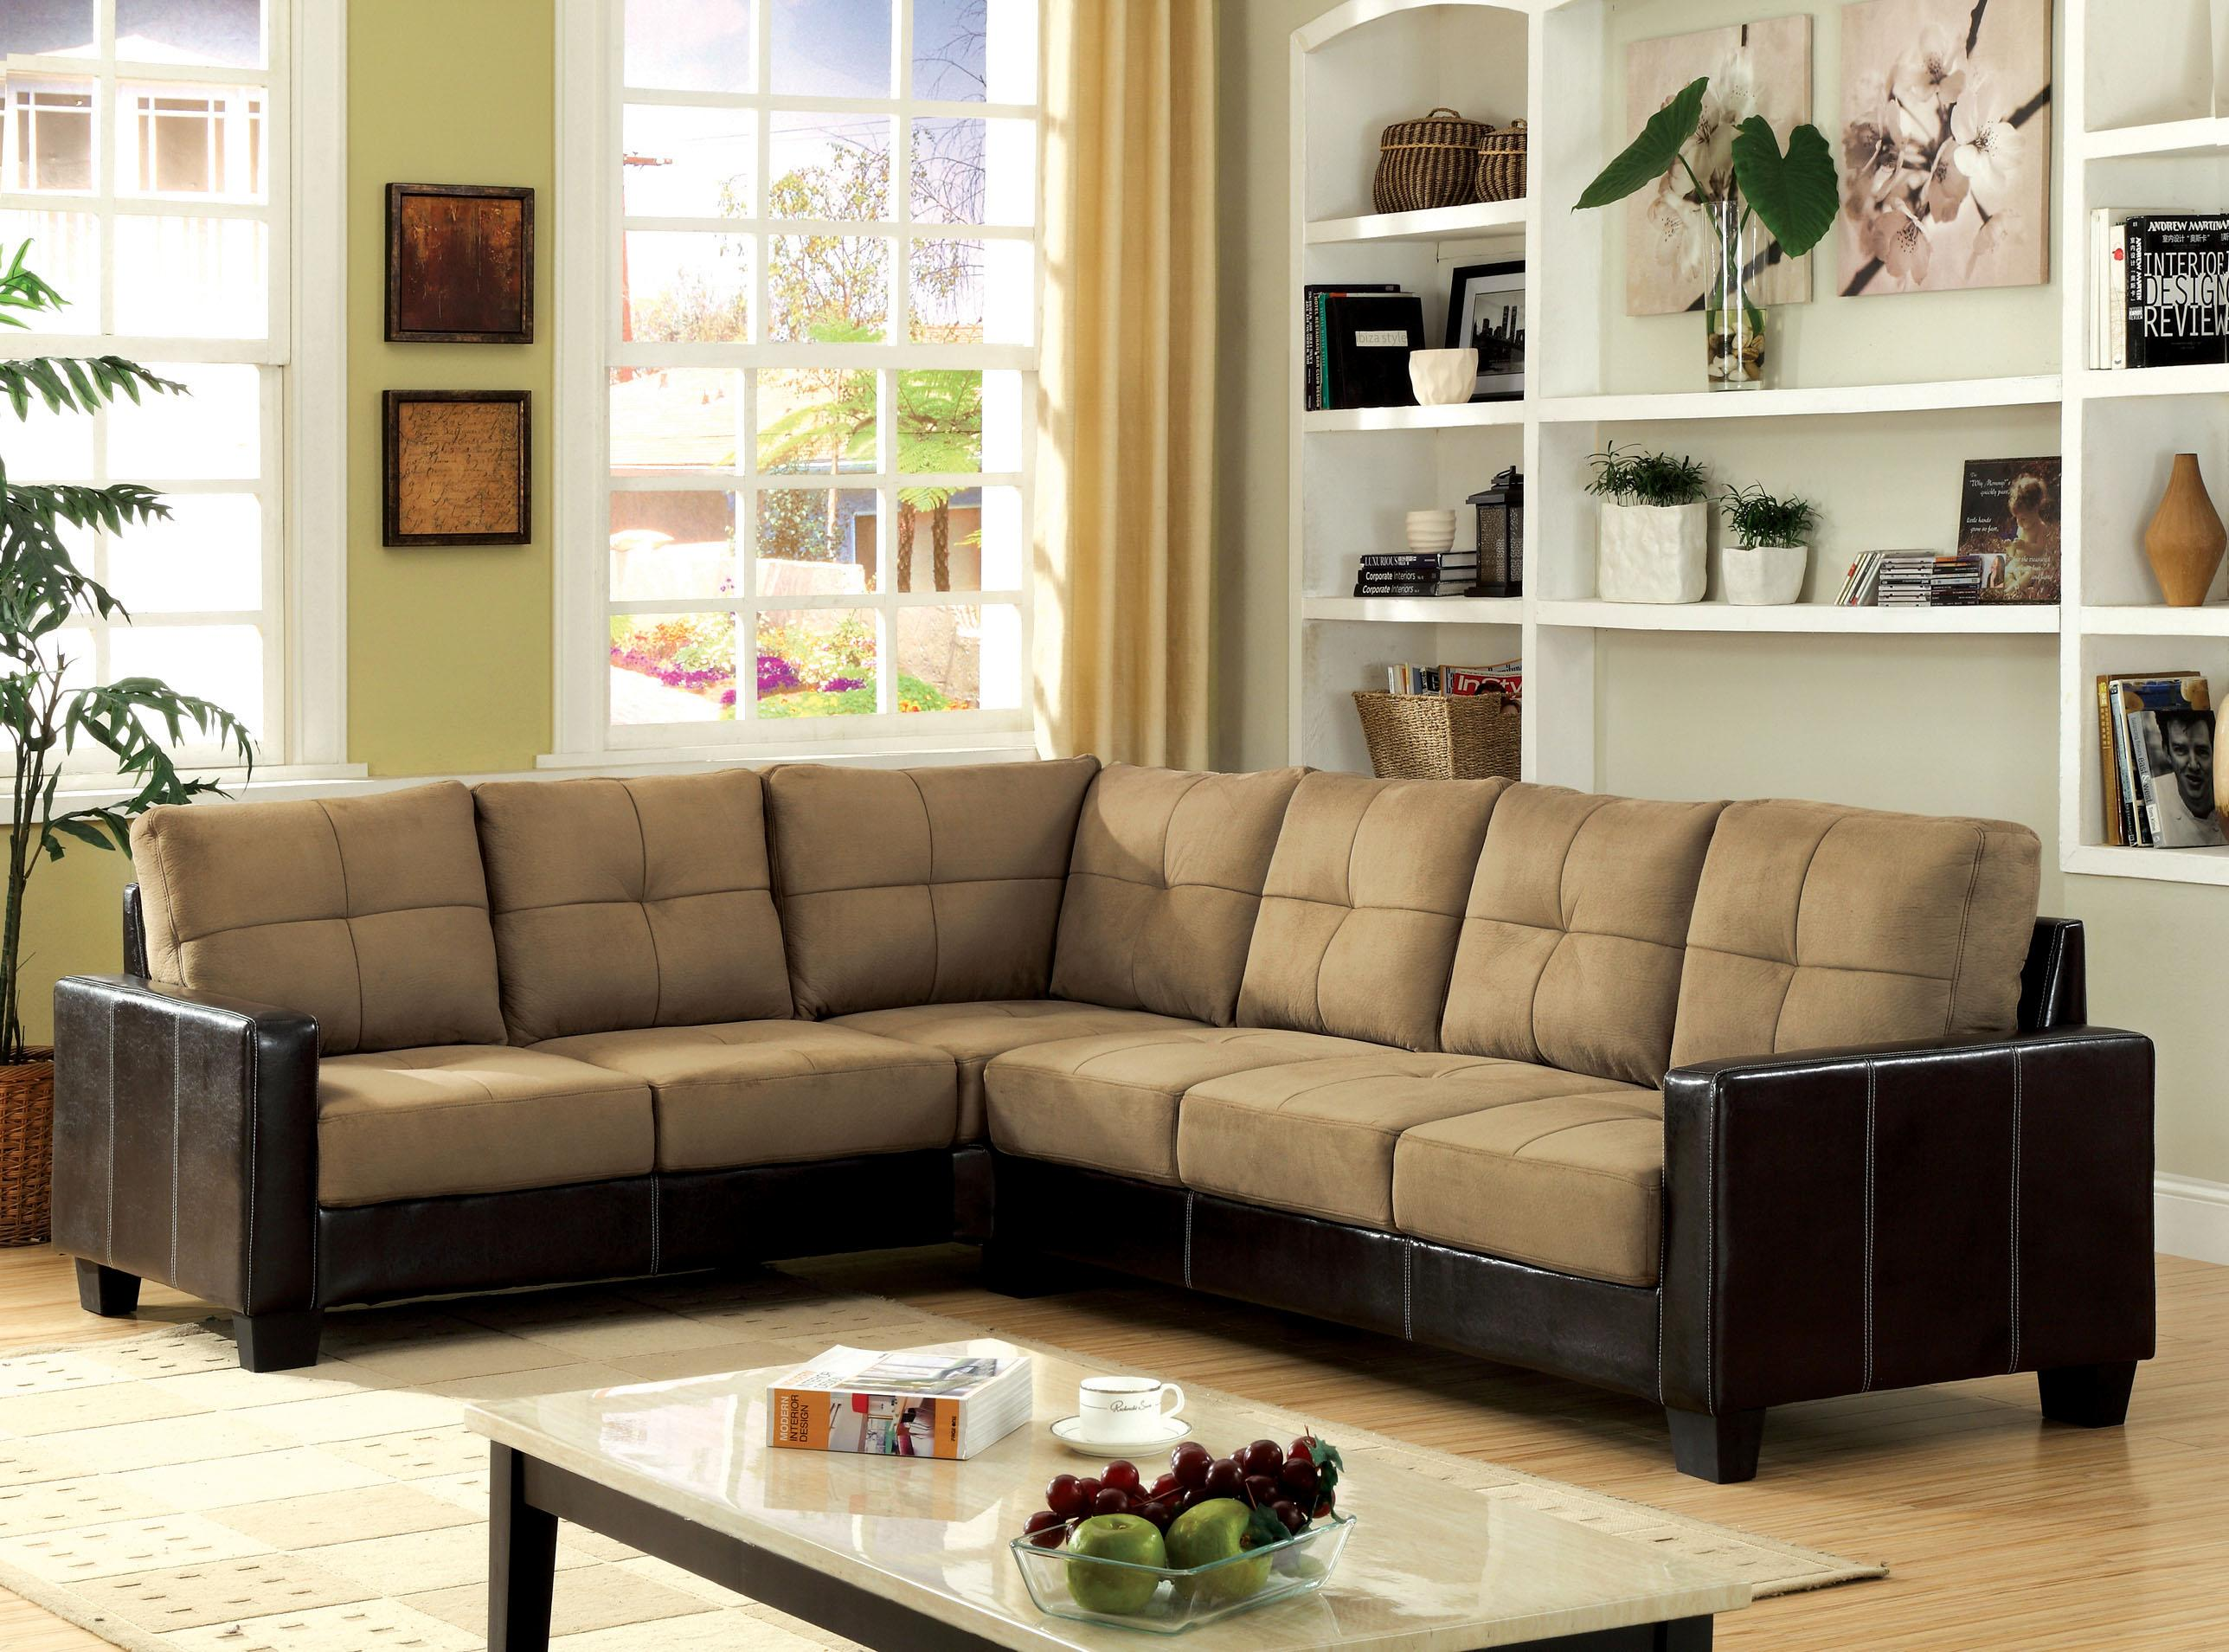 Amazon Com Furniture Of America Microfiber Upholstered Sectional